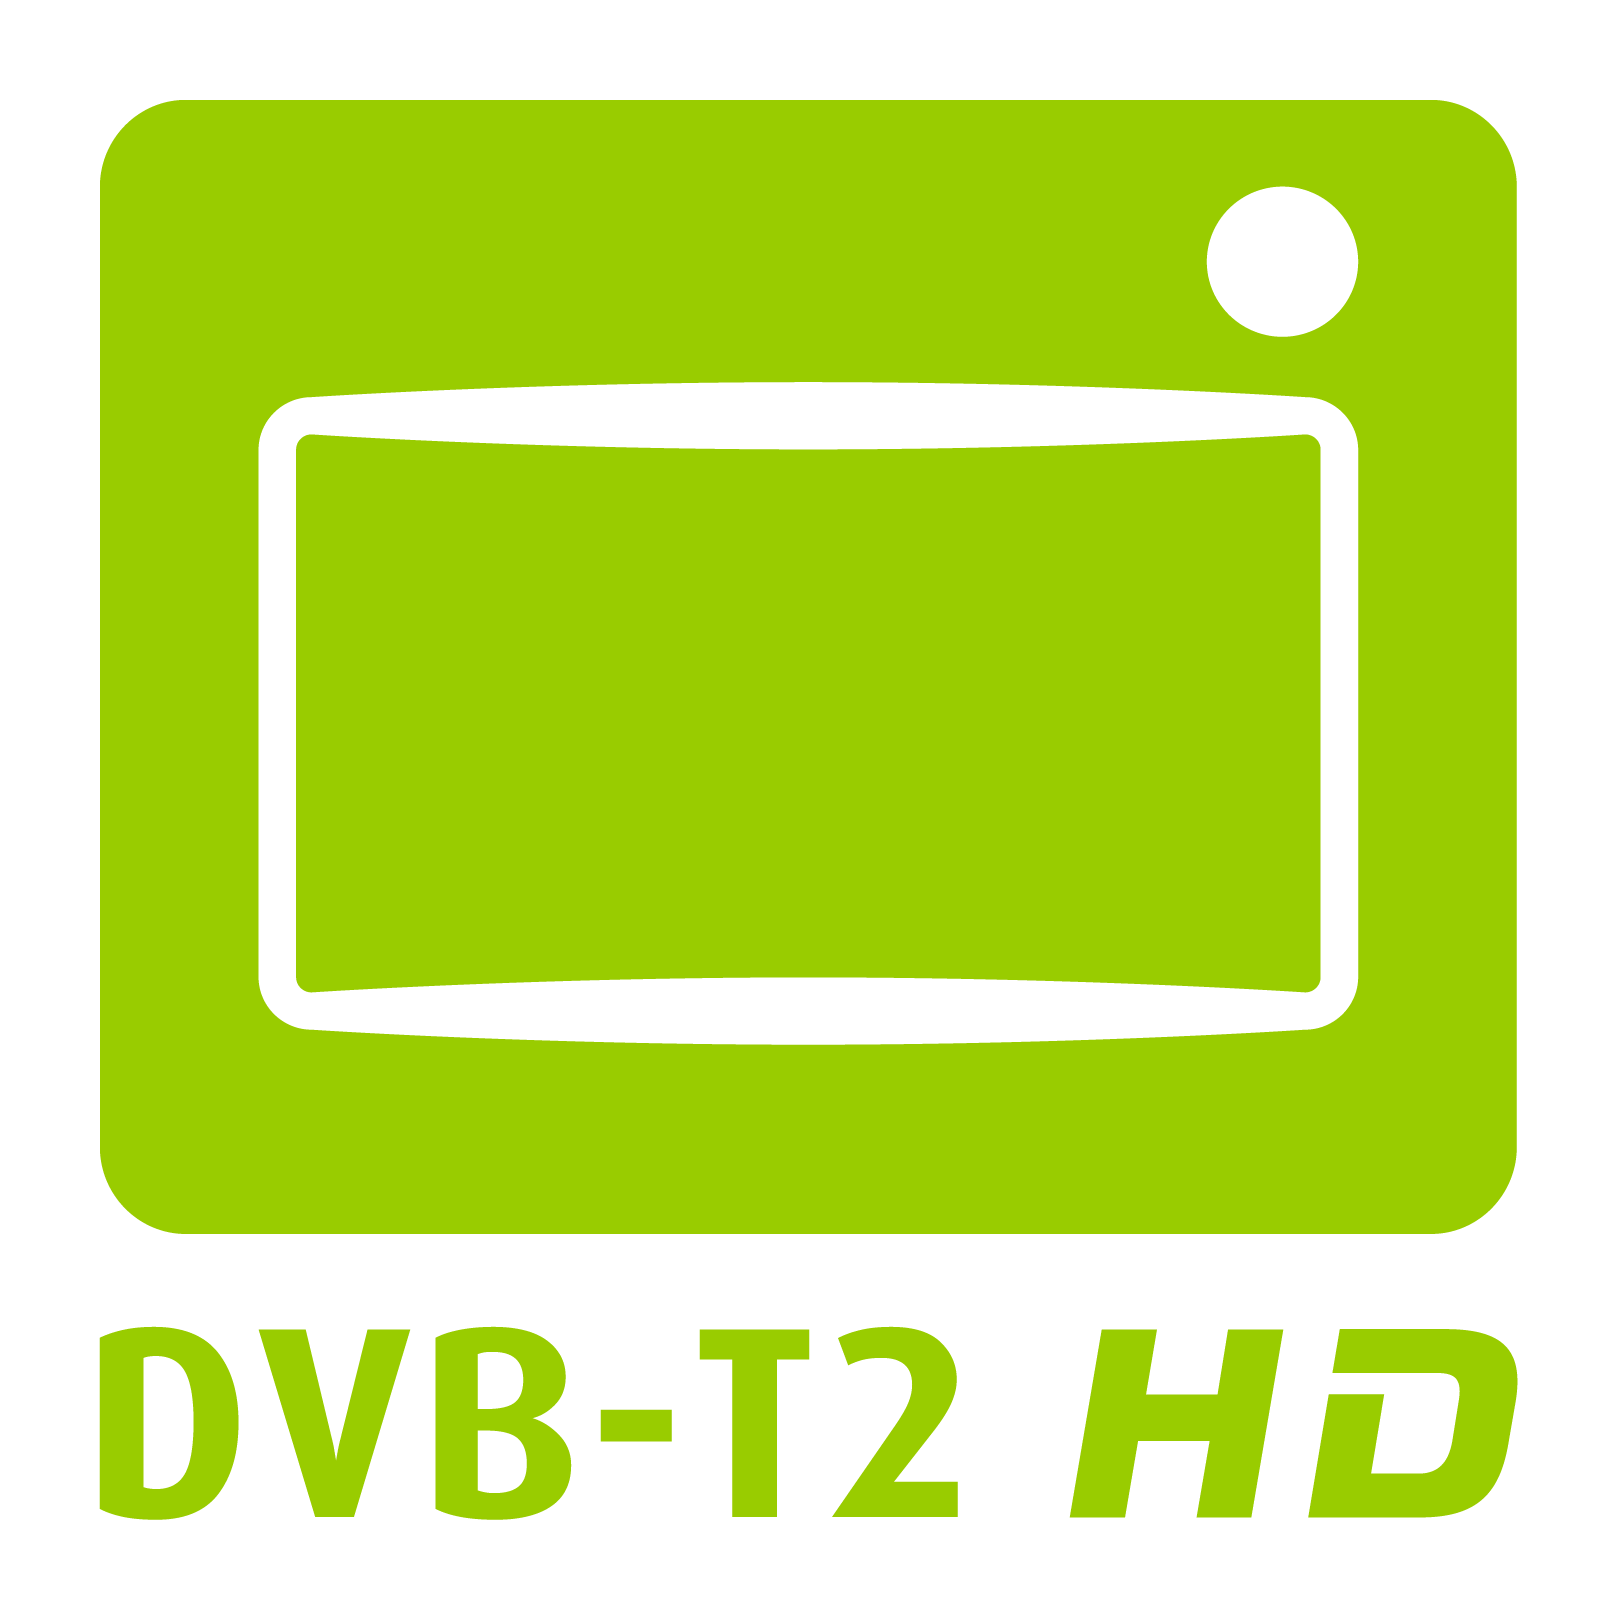 datei dvb t2 hd logo wikipedia. Black Bedroom Furniture Sets. Home Design Ideas